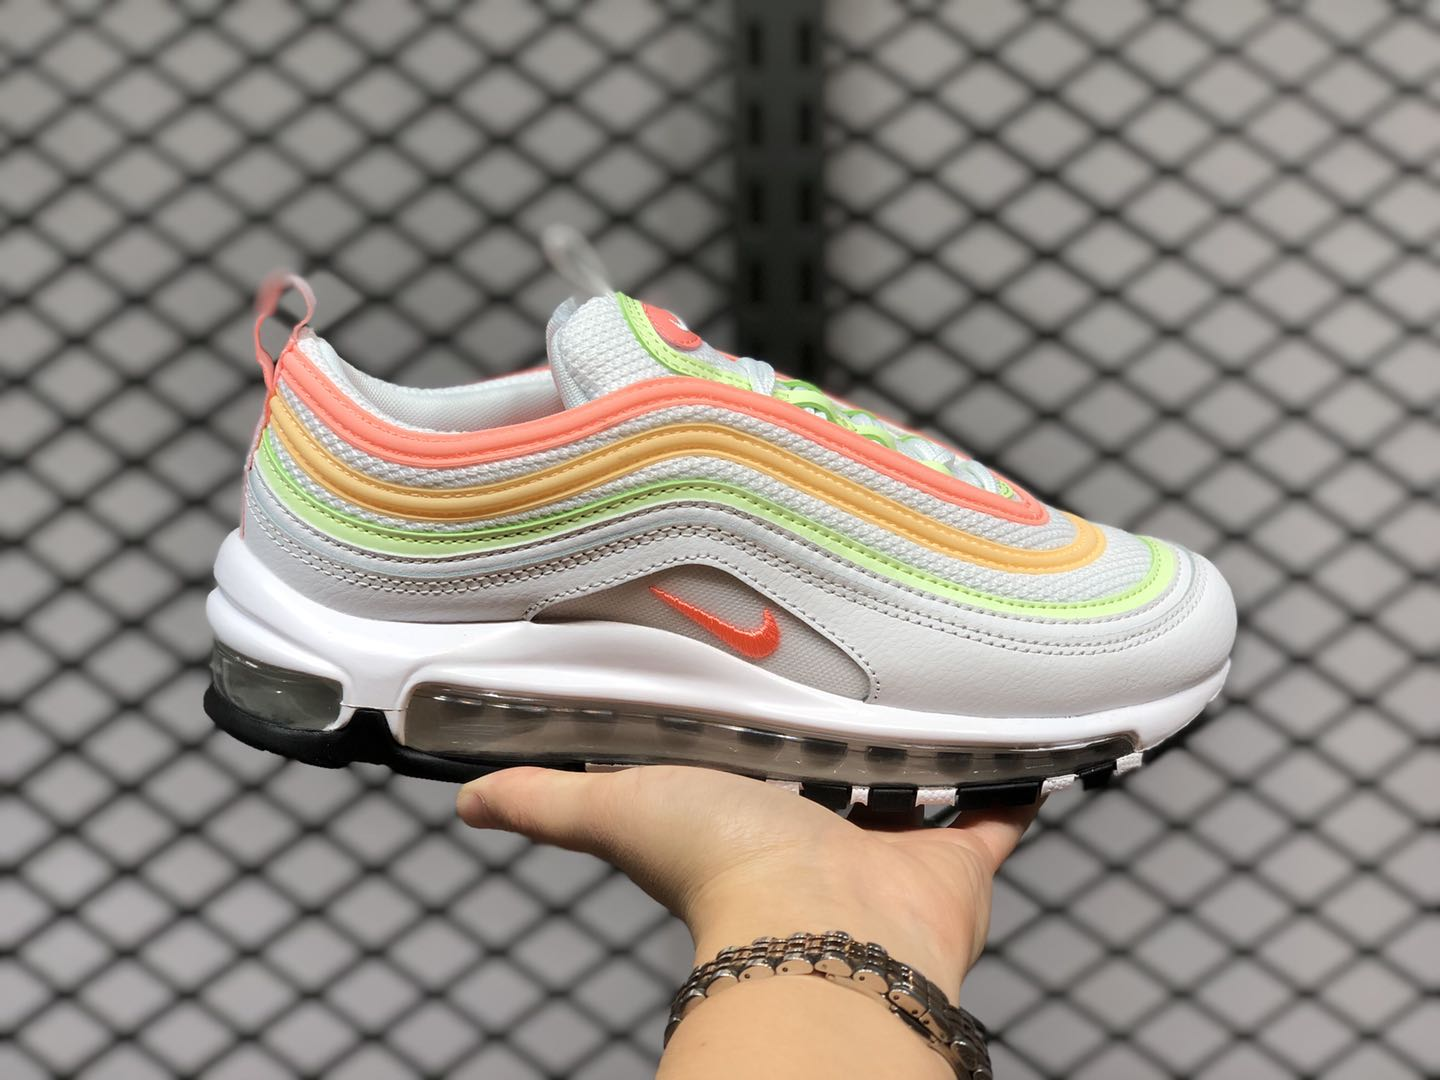 Nike Air Max 97 Essential White/Melon Tint/Barely Volt-Atomic Pink CZ6087-100